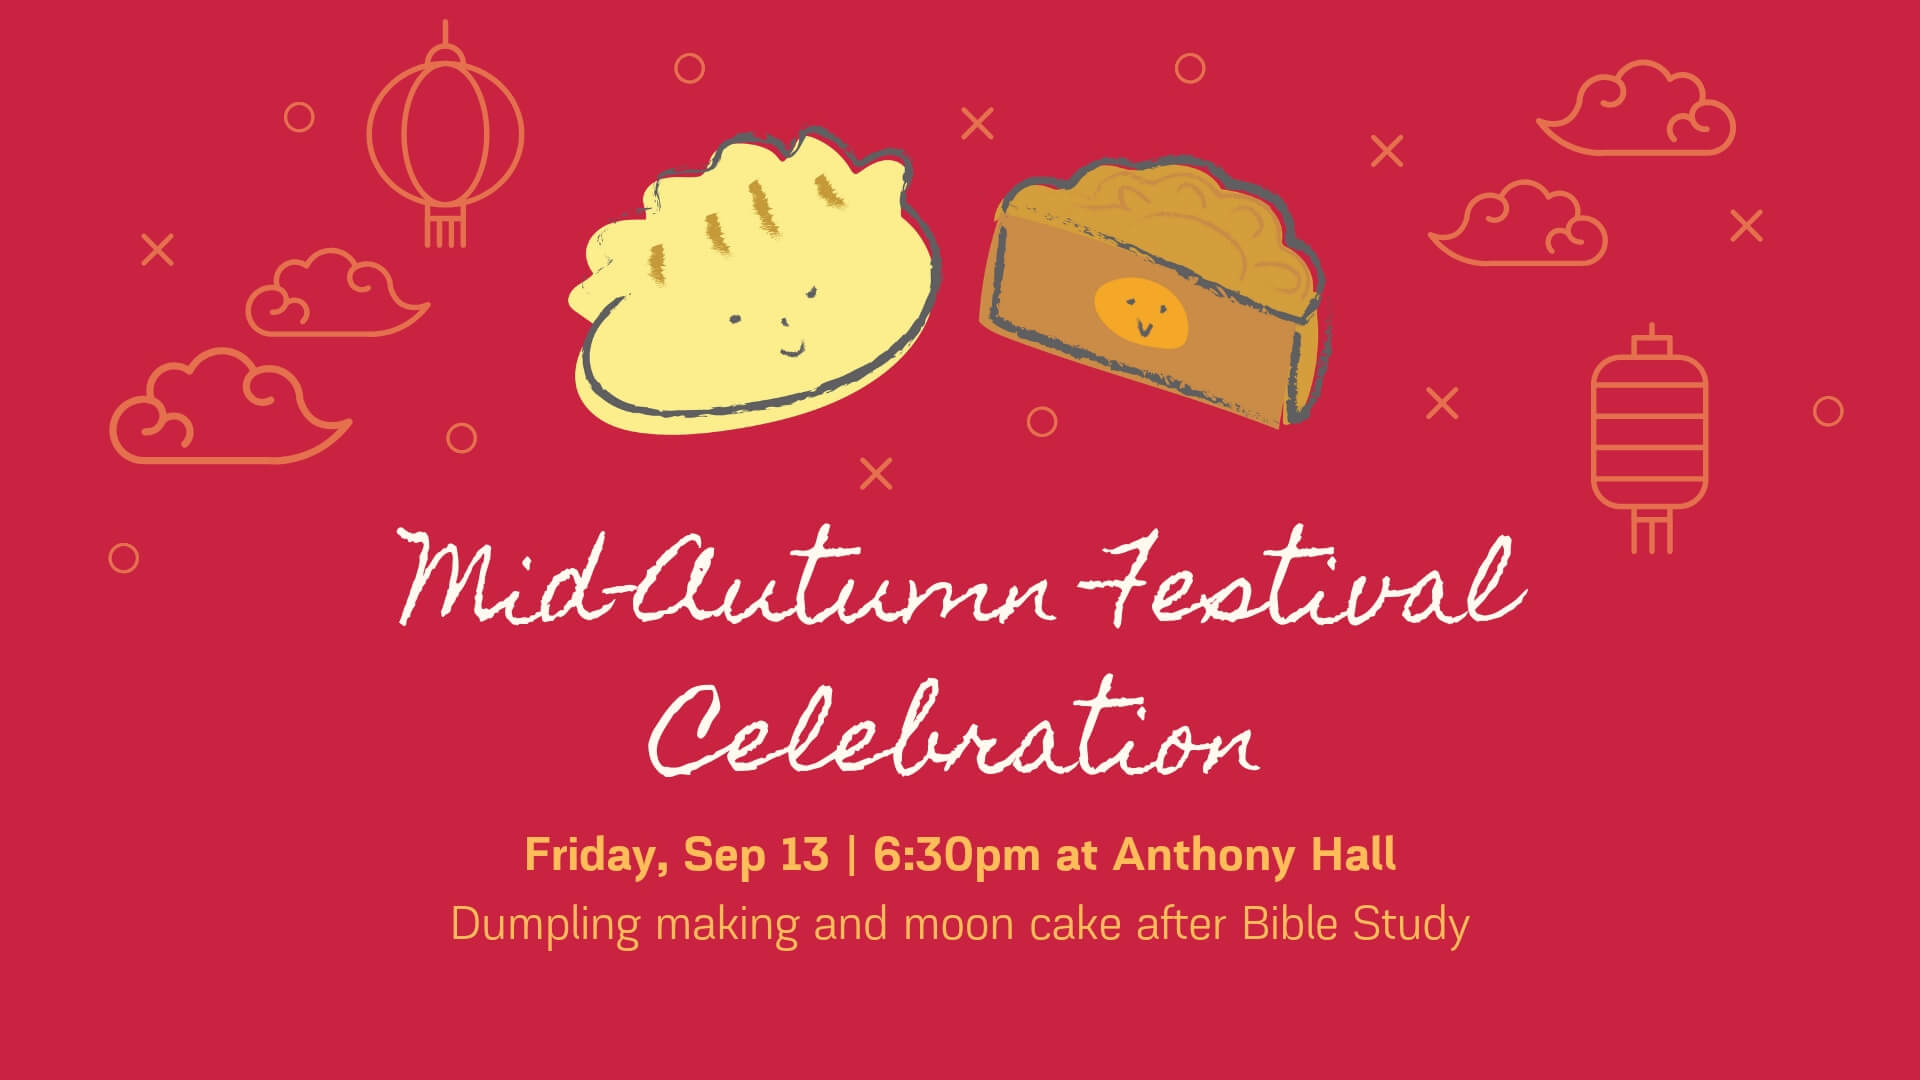 Mid-Autumn Festival Celebration - Splash.jpg